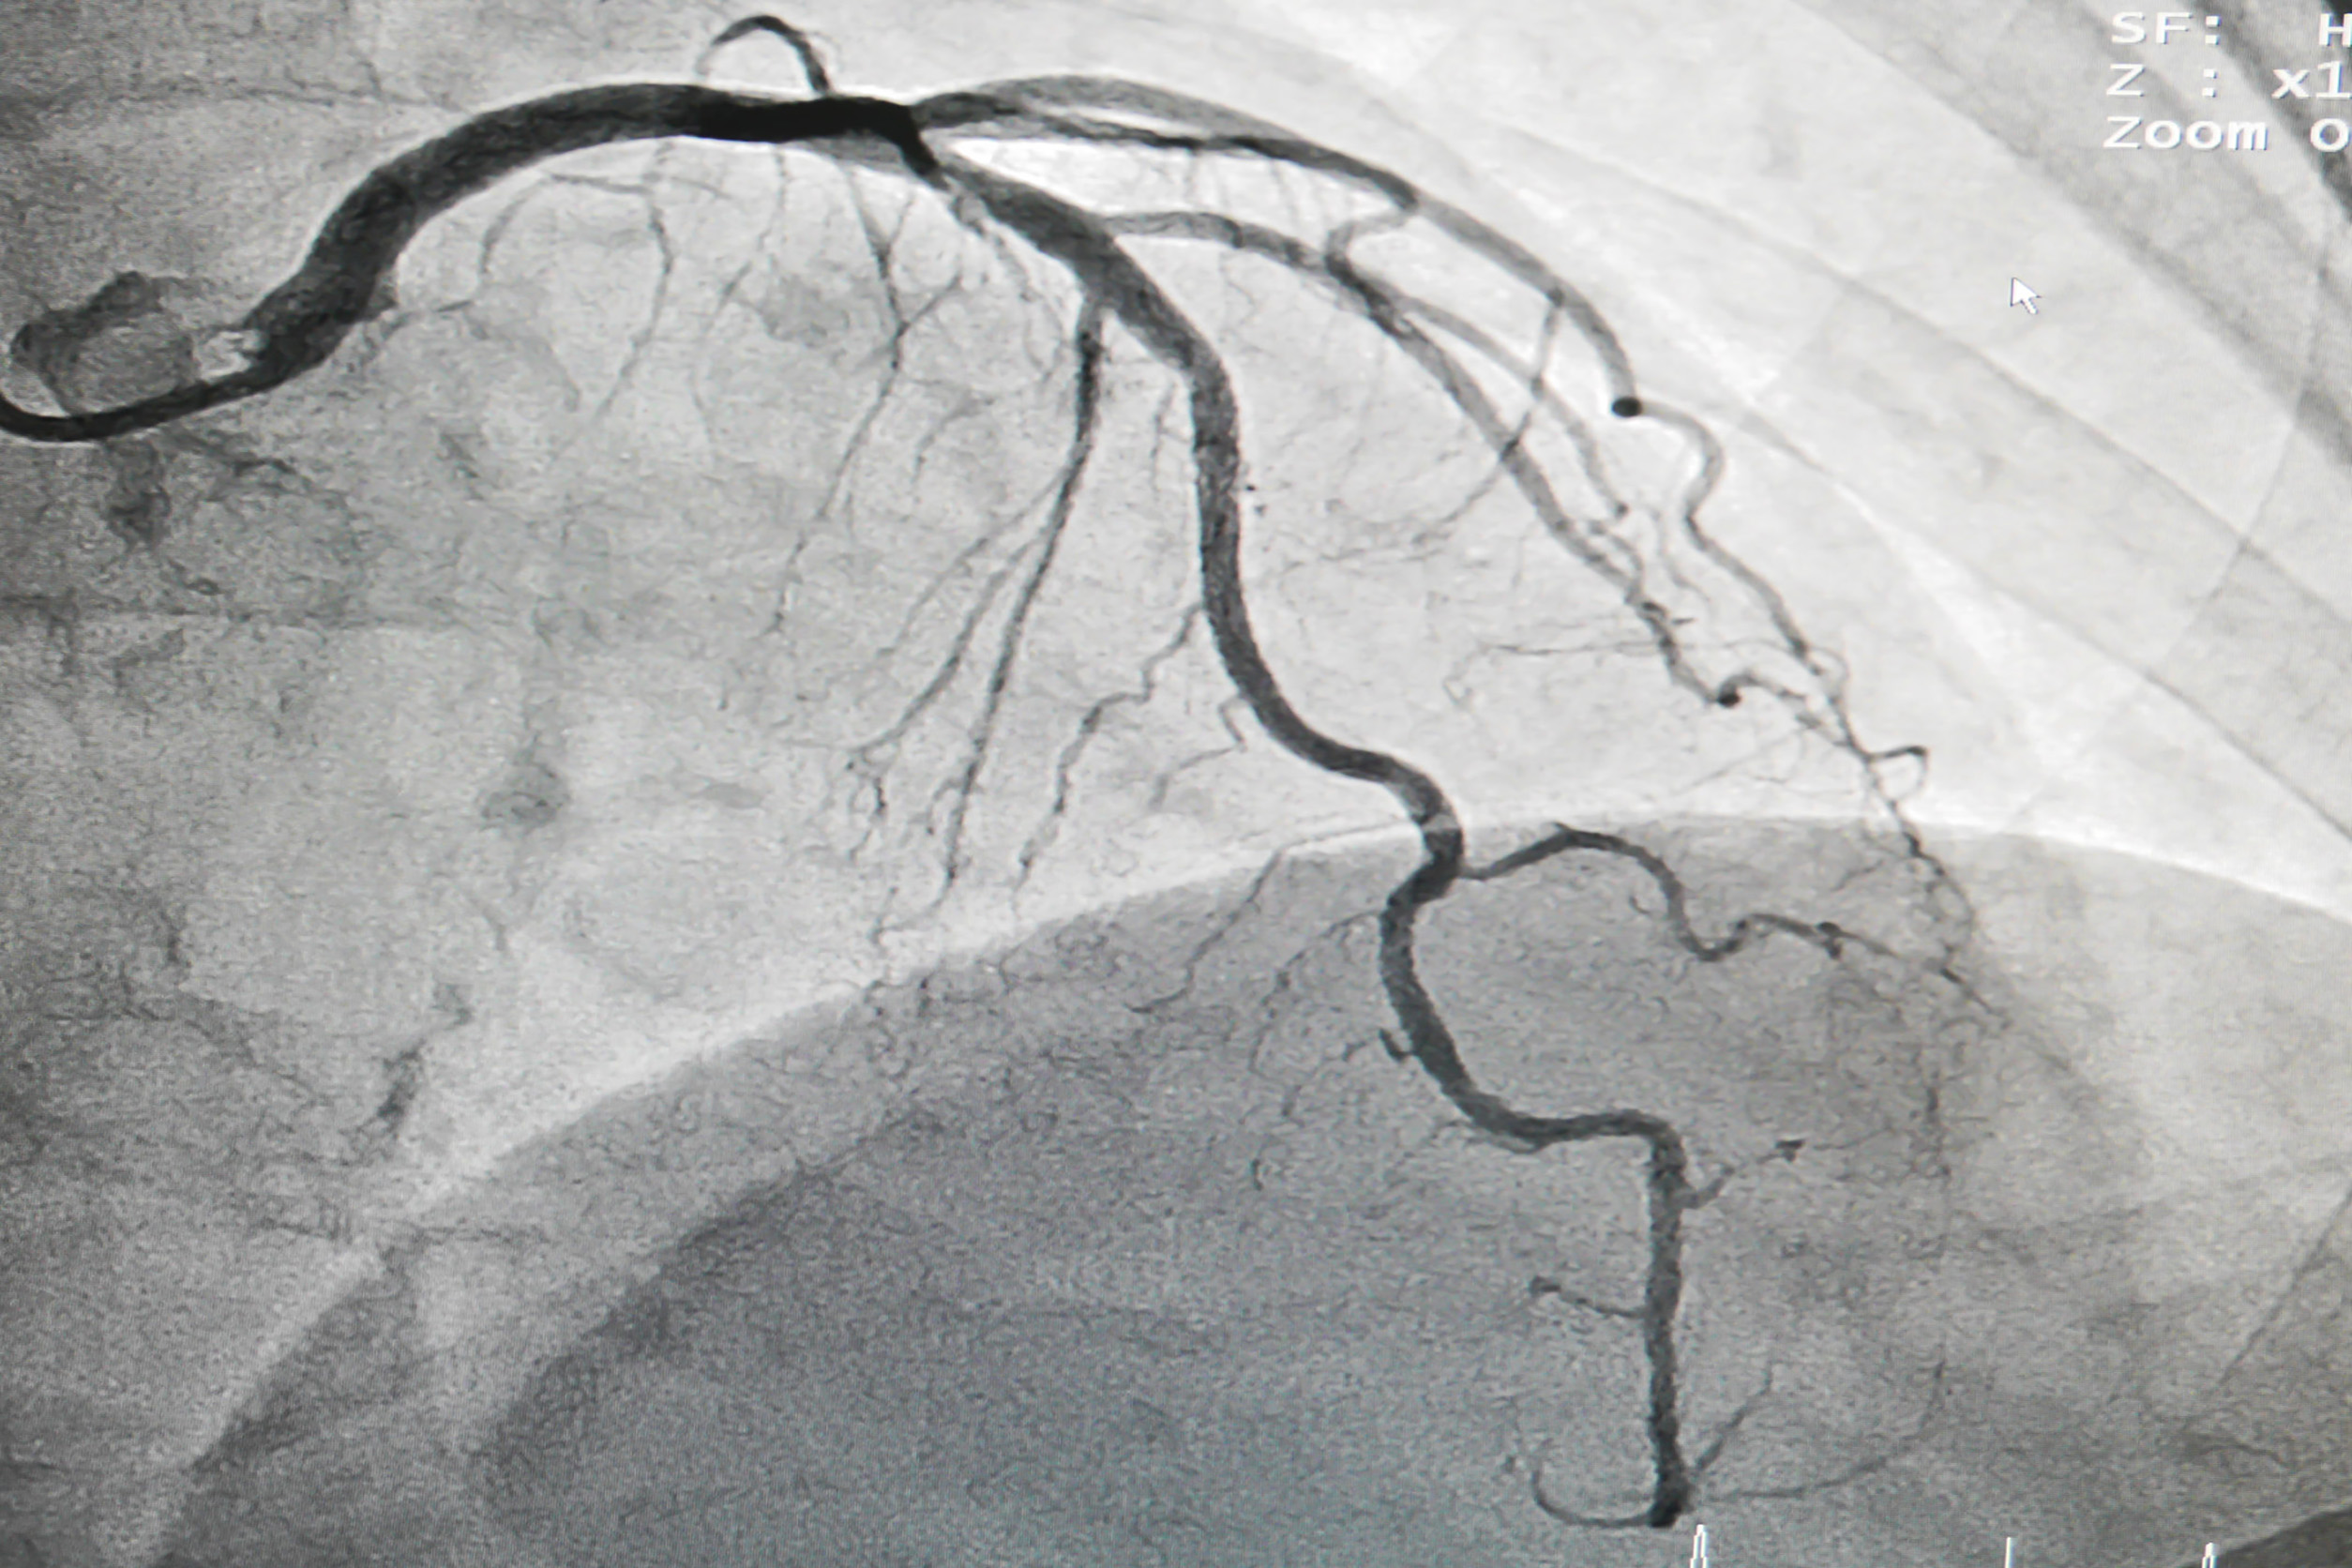 Can FFR be derived from angiography reliably?